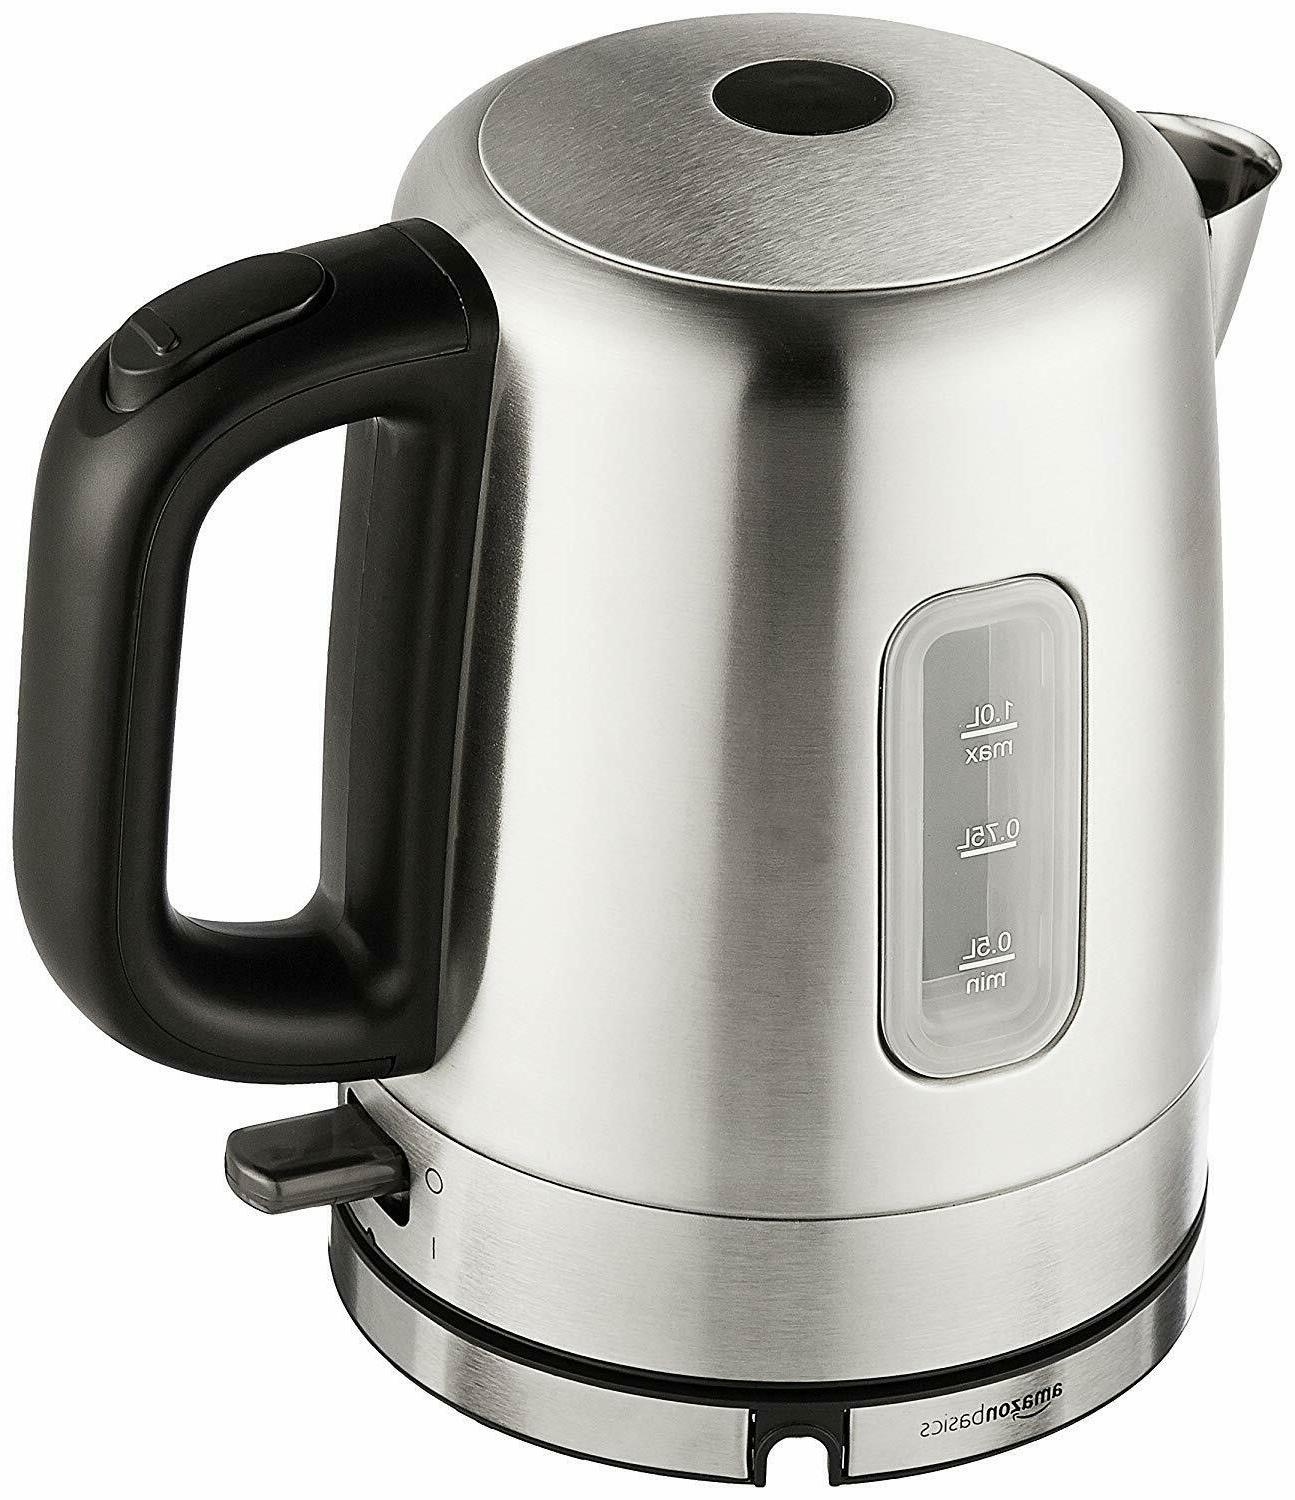 amazonbasics stainless steel porrtable electric hot water